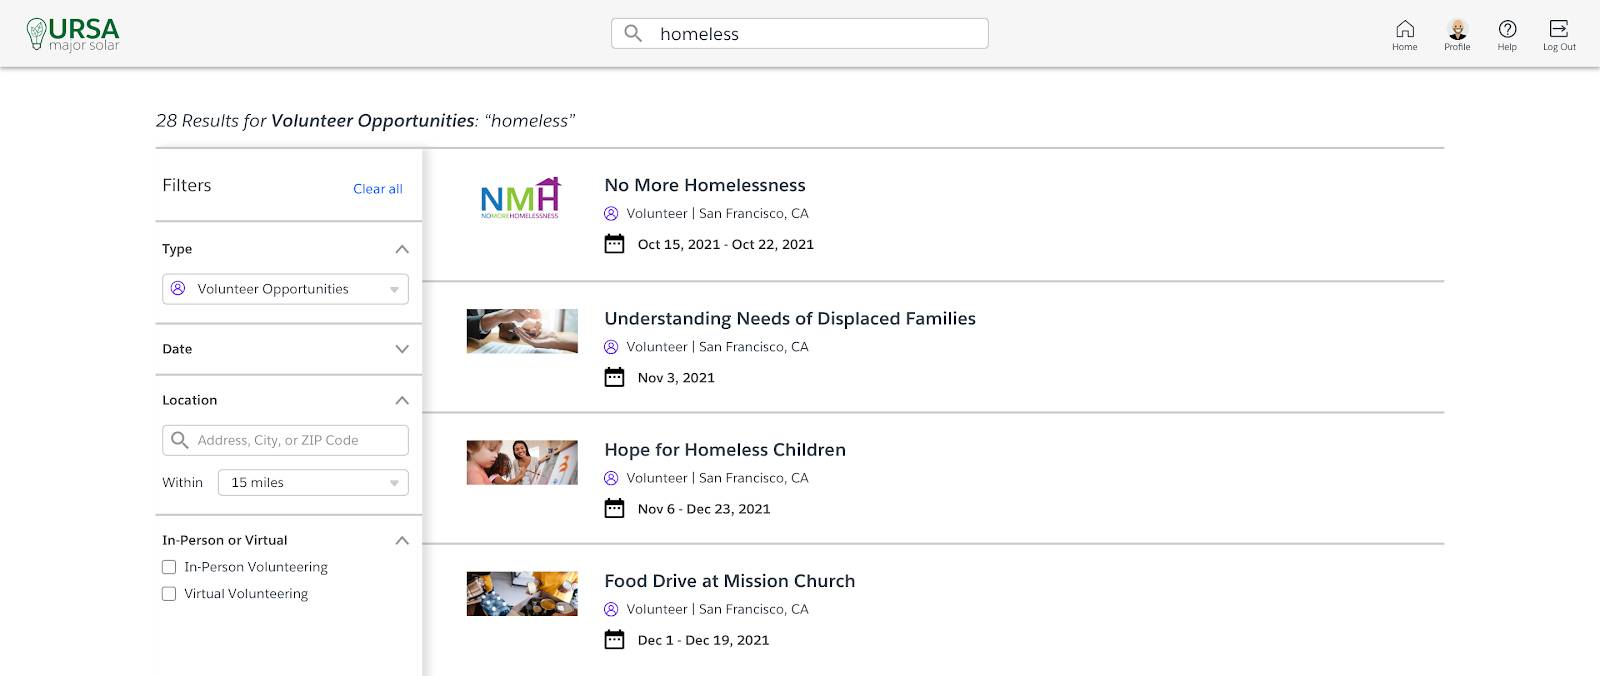 Search results for Homeless and Volunteer Opportunities